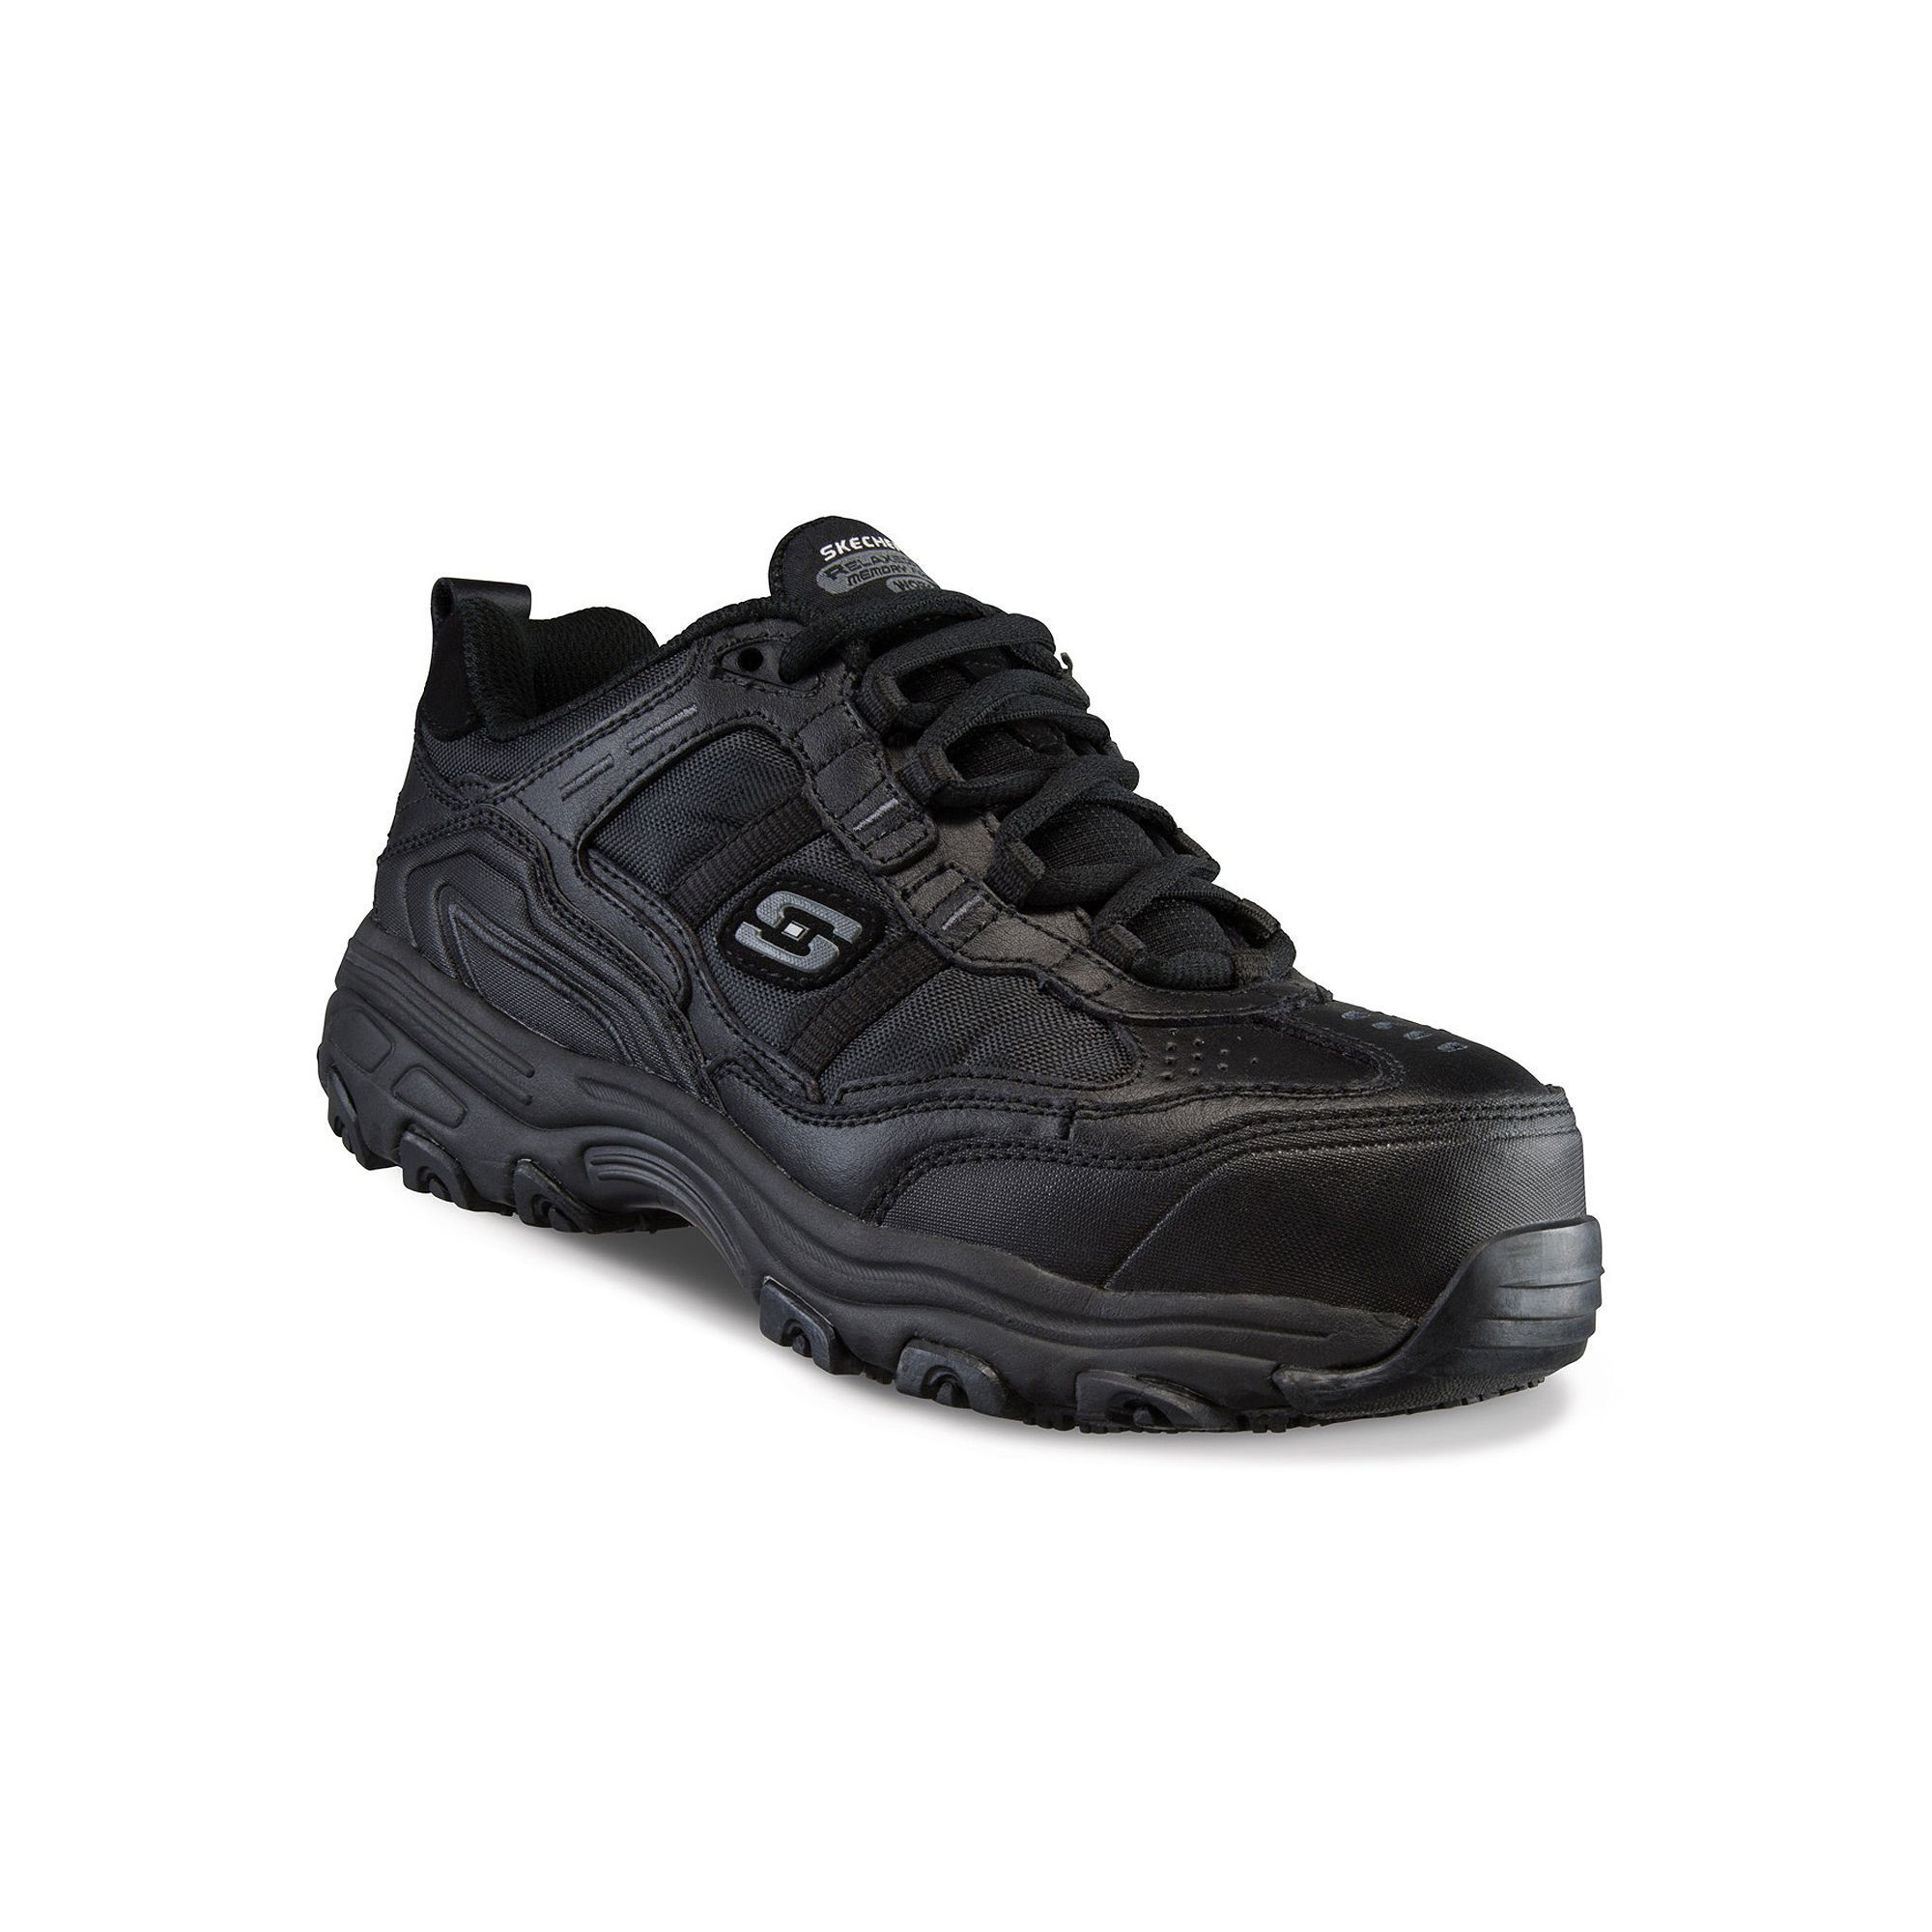 3f2be7be70d Skechers Work Relaxed Fit D'Lites SR Tolland Women's Composite Toe ...